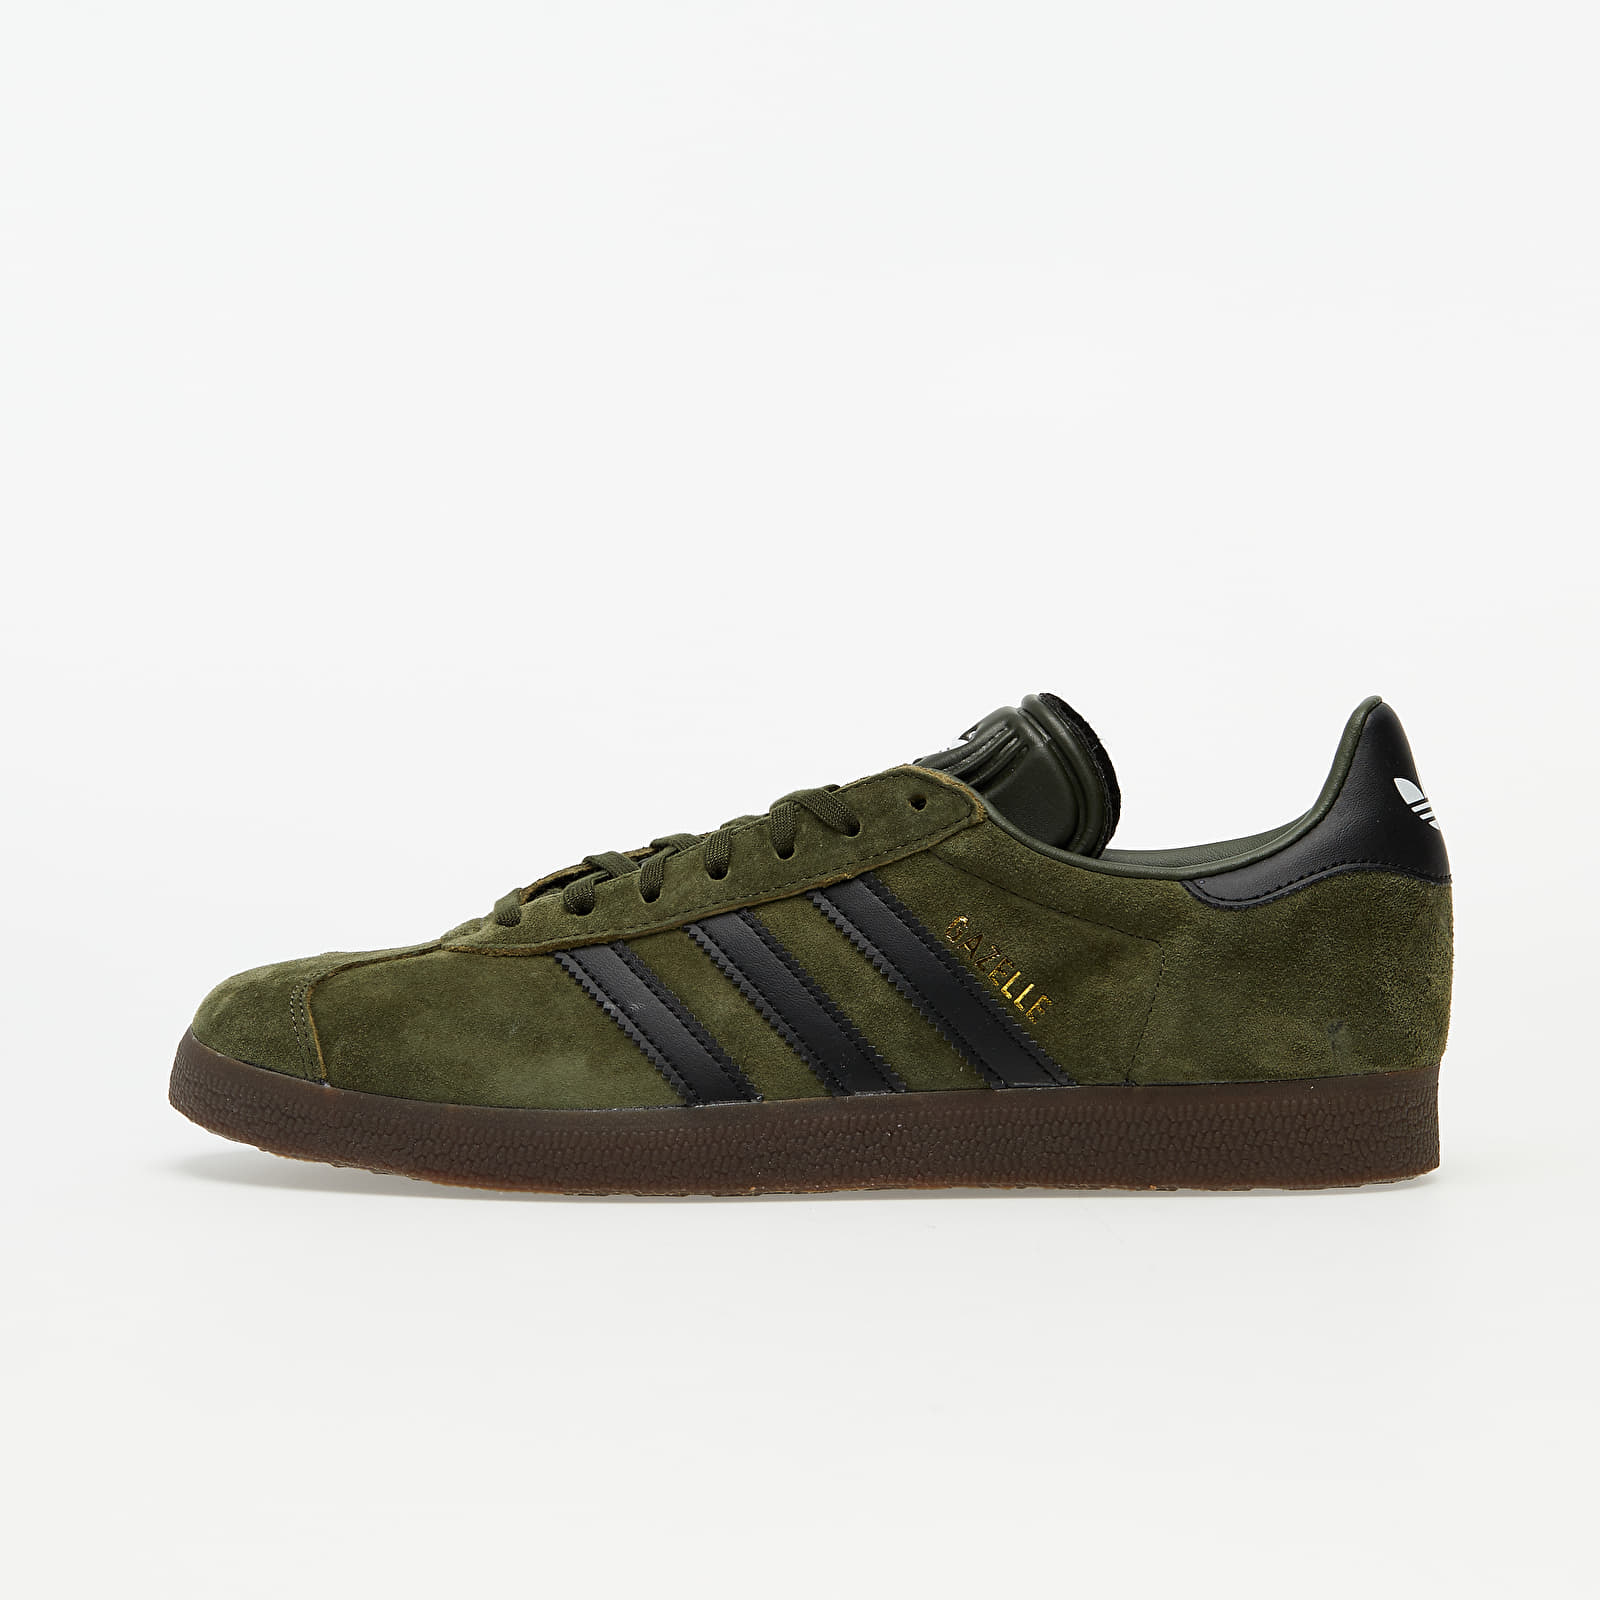 adidas Gazelle Night Cargo/ Core Black/ Gum 5 EUR 42